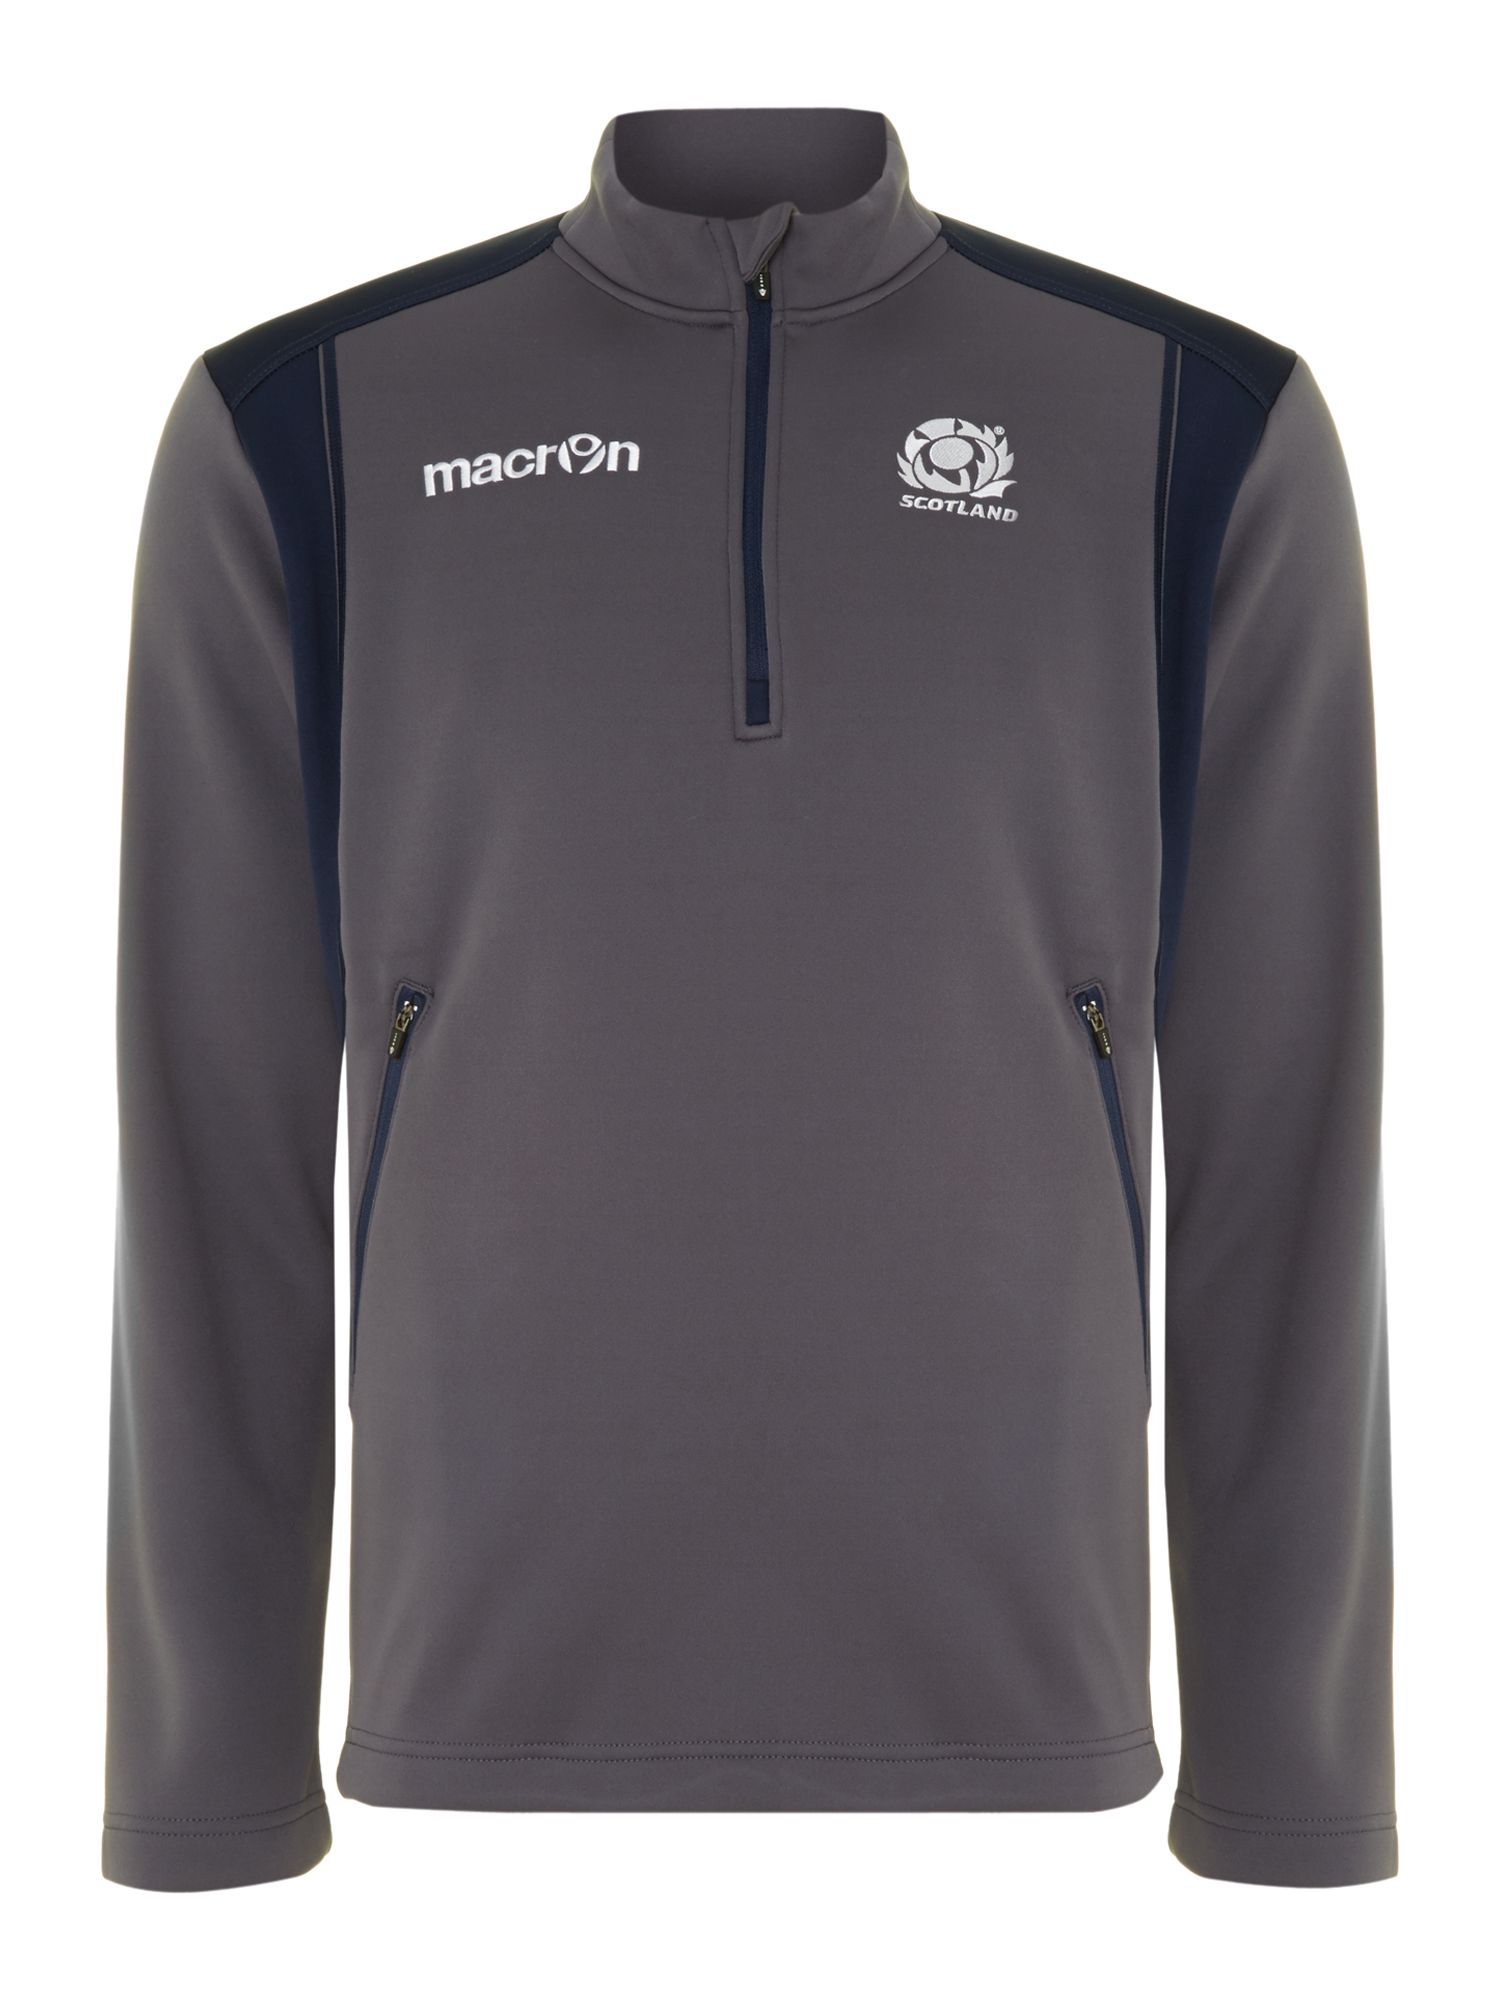 Microfleece 1/4 zip top